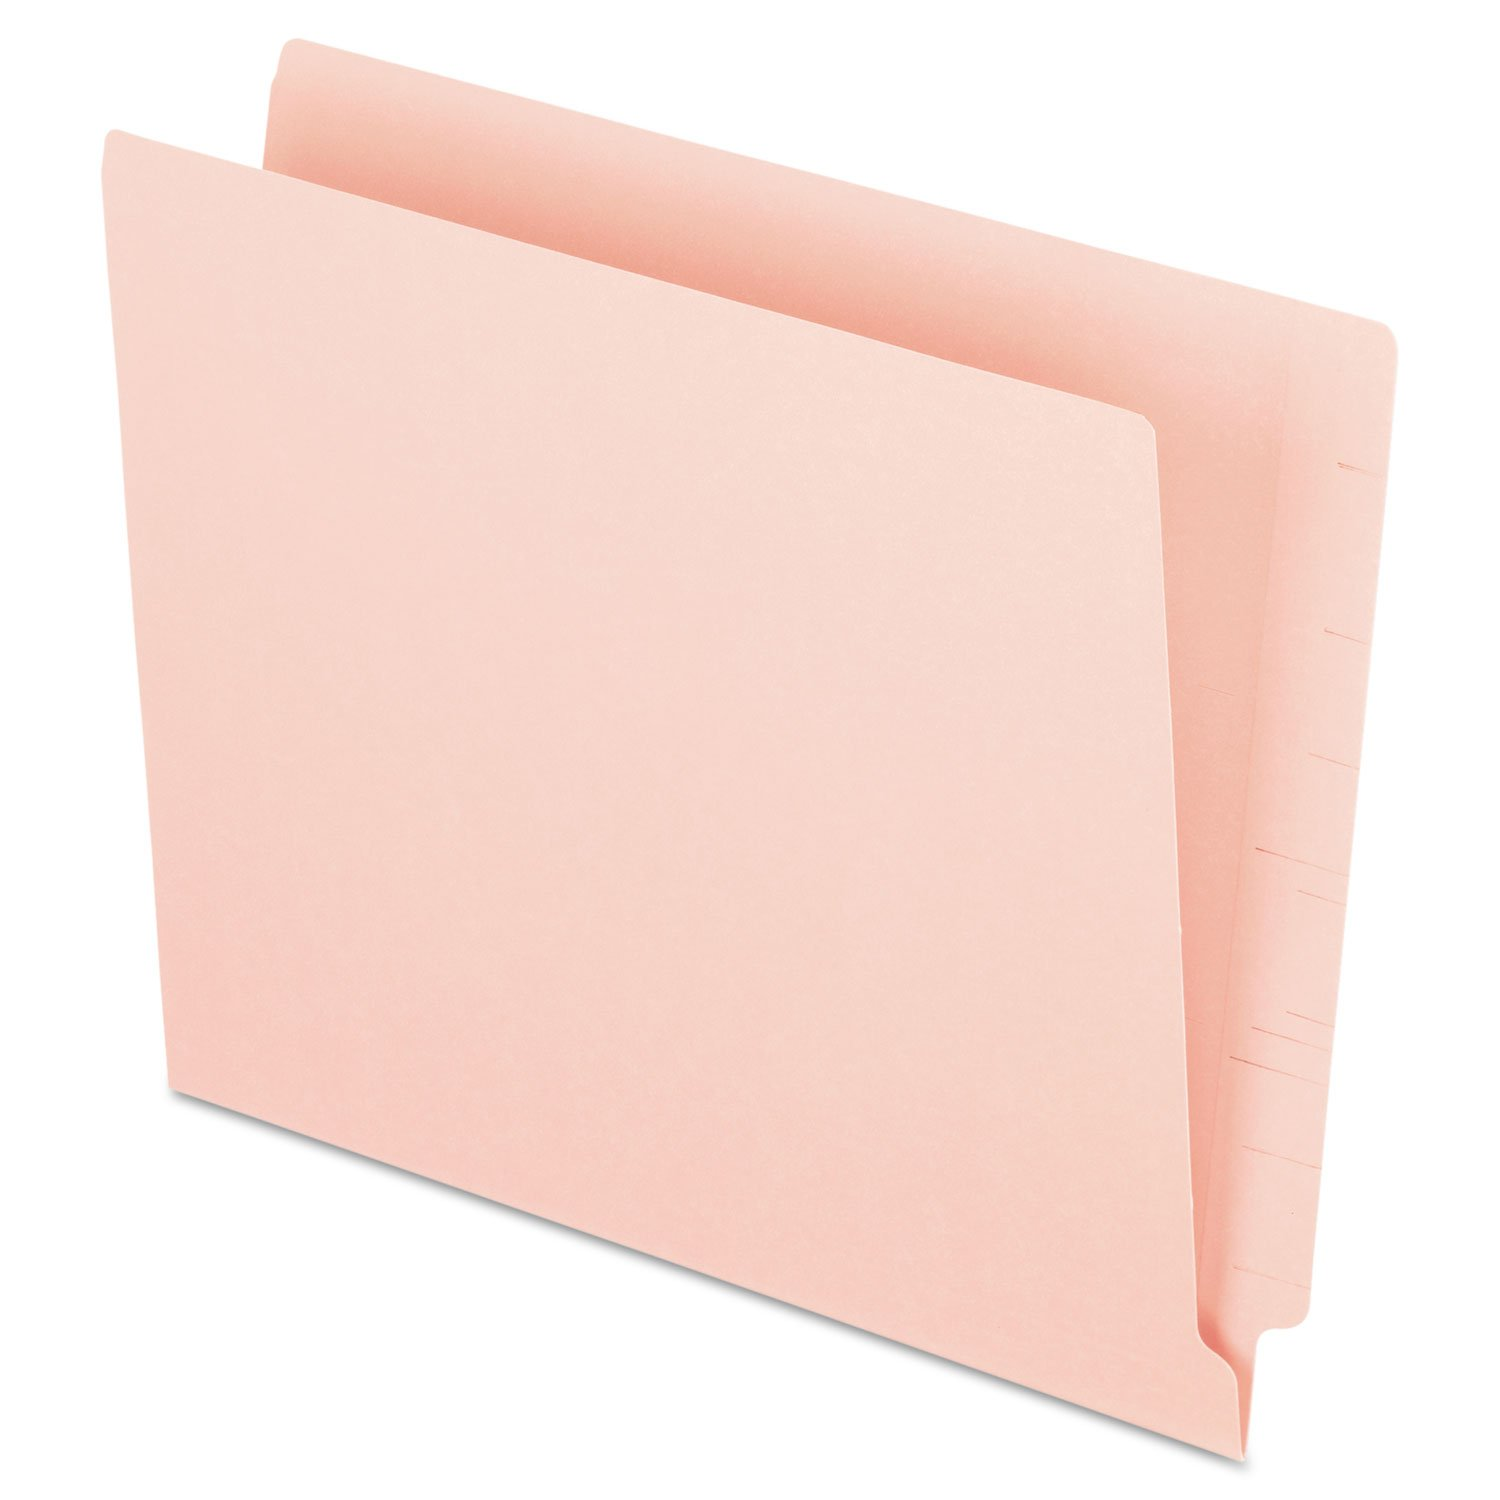 End Tab File Folder,3/4'' Exp.,11 pt.,Letter,100/BX,Pink, Sold as 1 Box 3/4'' Exp. Esselte DOBA-ESSH110DP